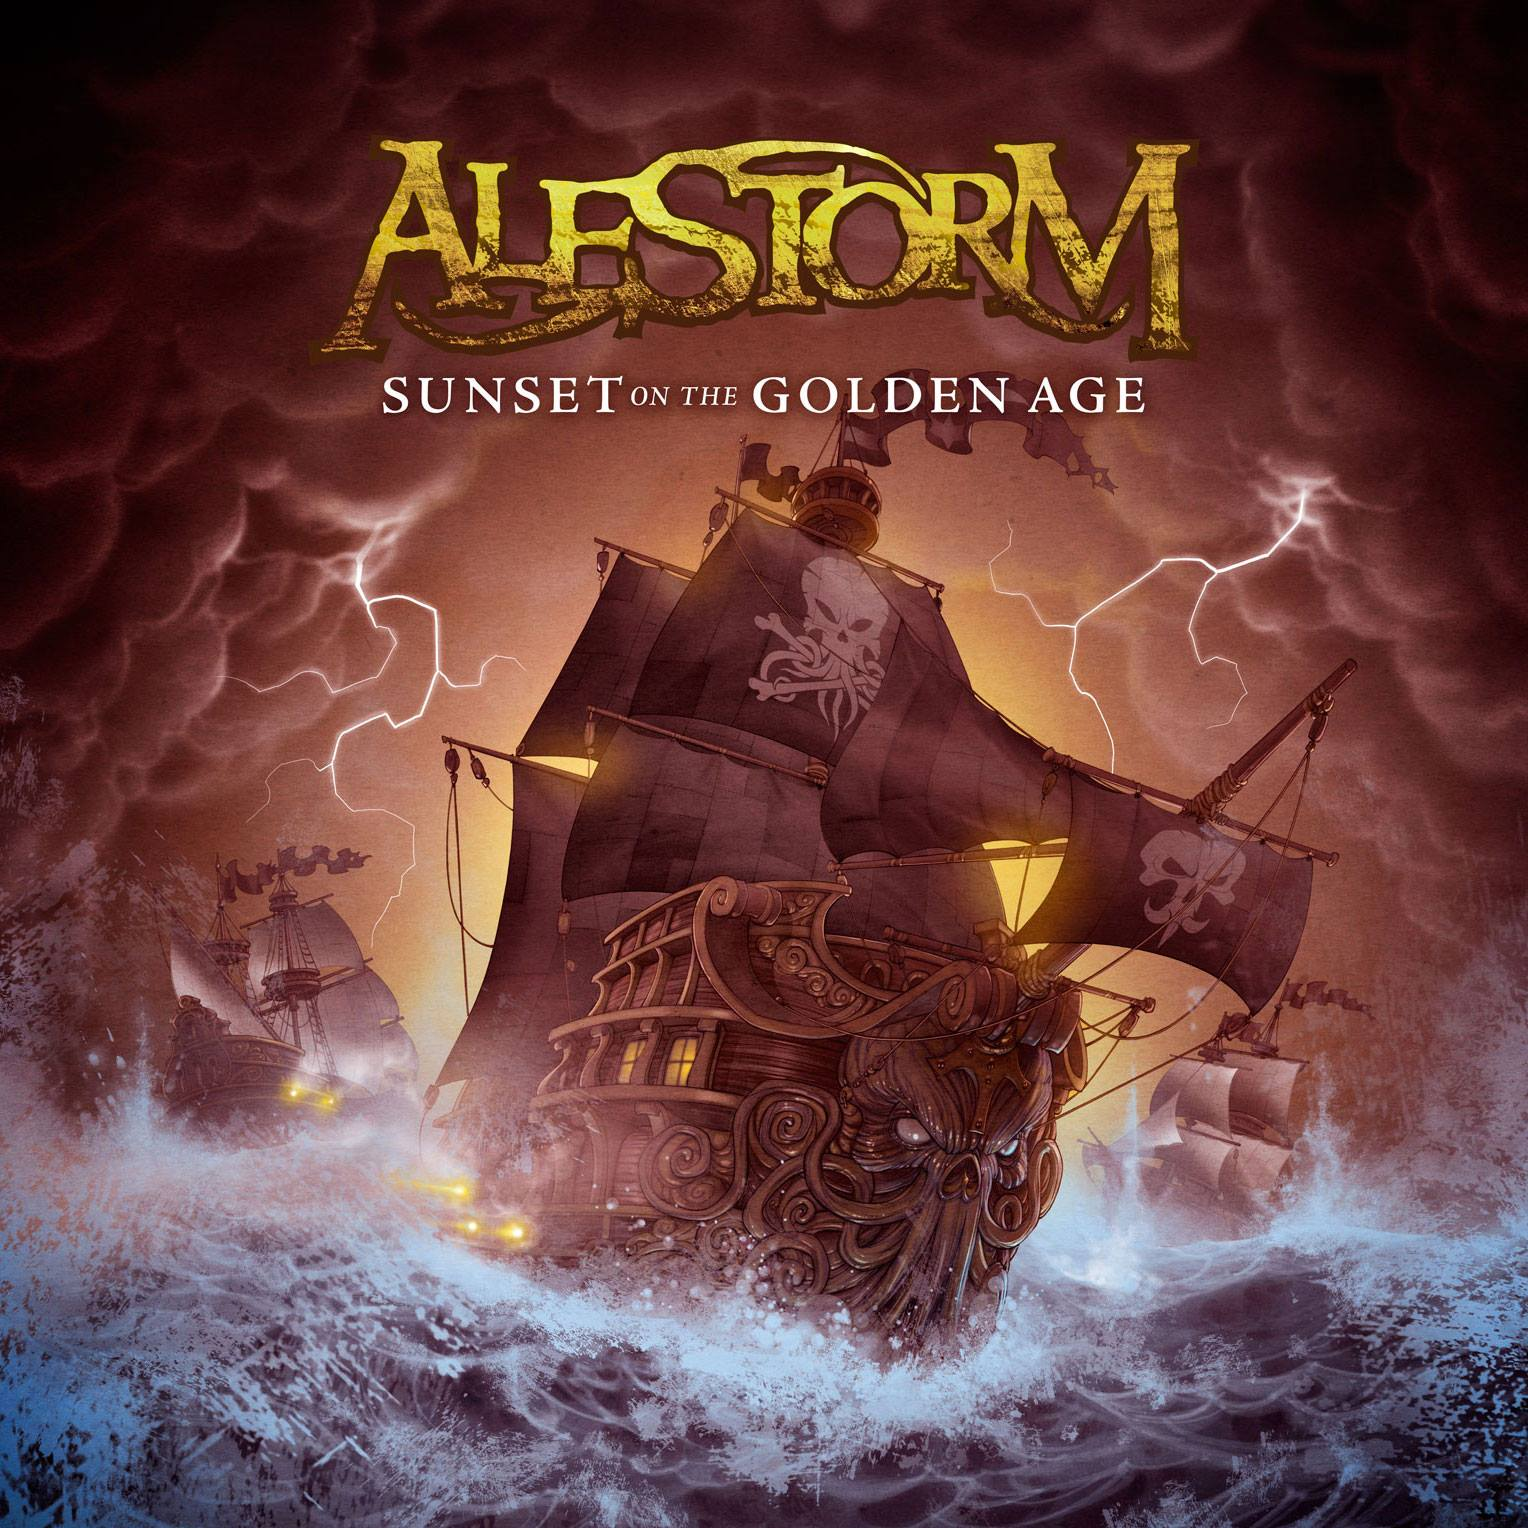 Things You Might Have Missed 2014: Alestorm – Sunset on the Golden Age